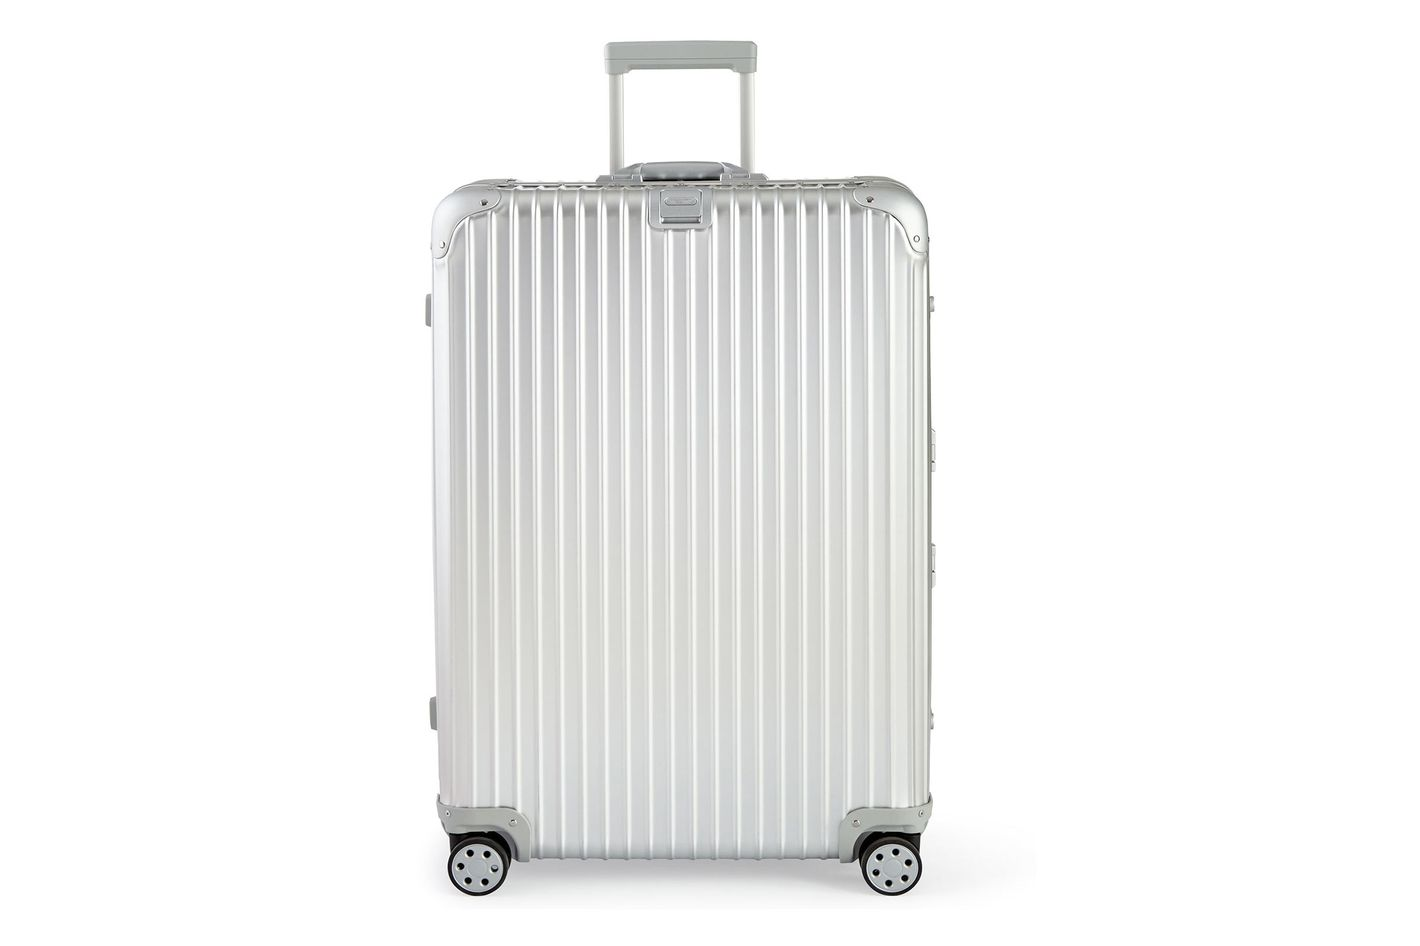 The Best Rolling Luggage, According to Frequent Fliers